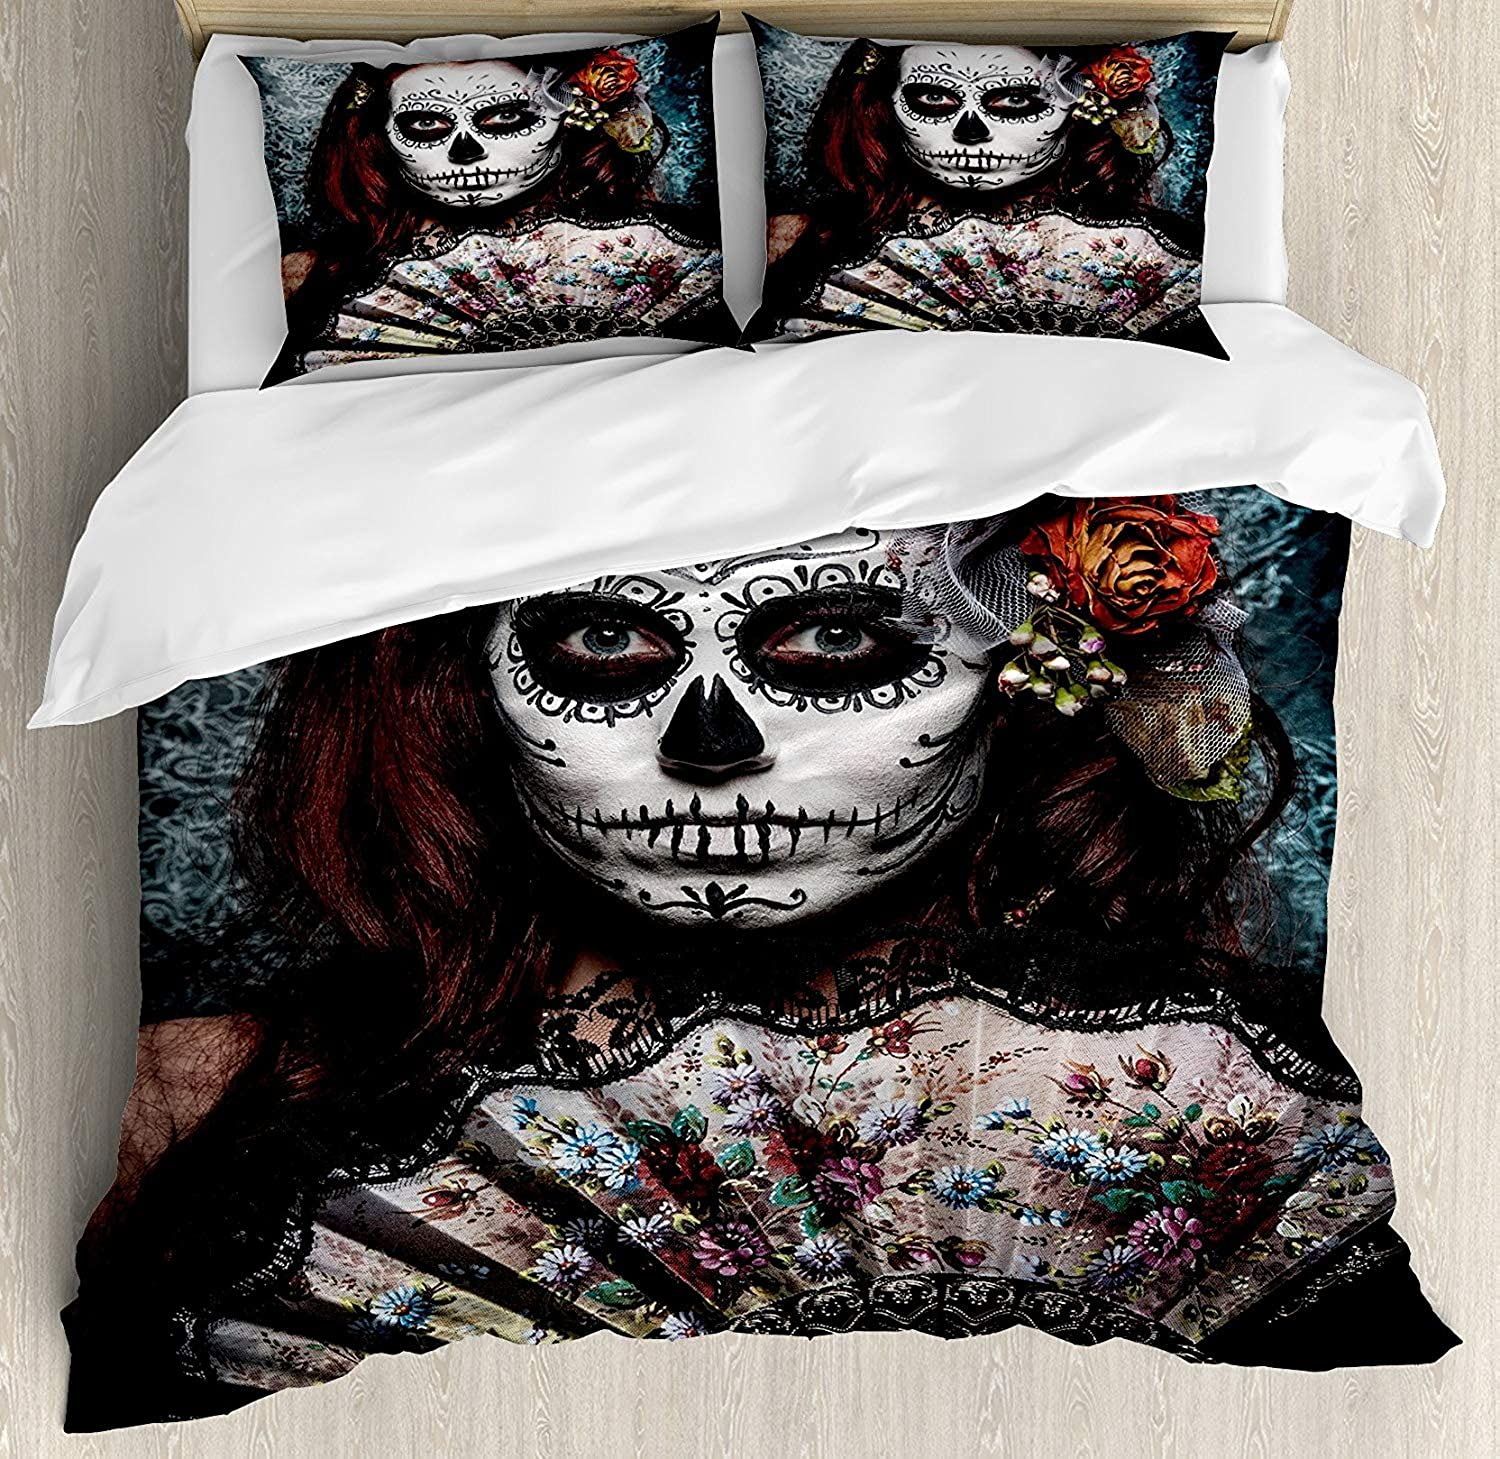 Day of The Dead Bedding Duvet Cover Set, Make up Artist Girl with Dead Skull Scary Mask pinks Artwork Print, Decorative 3 Piece Bedding Set with 2 Pillow Shams, Cadet bluee Maroon King